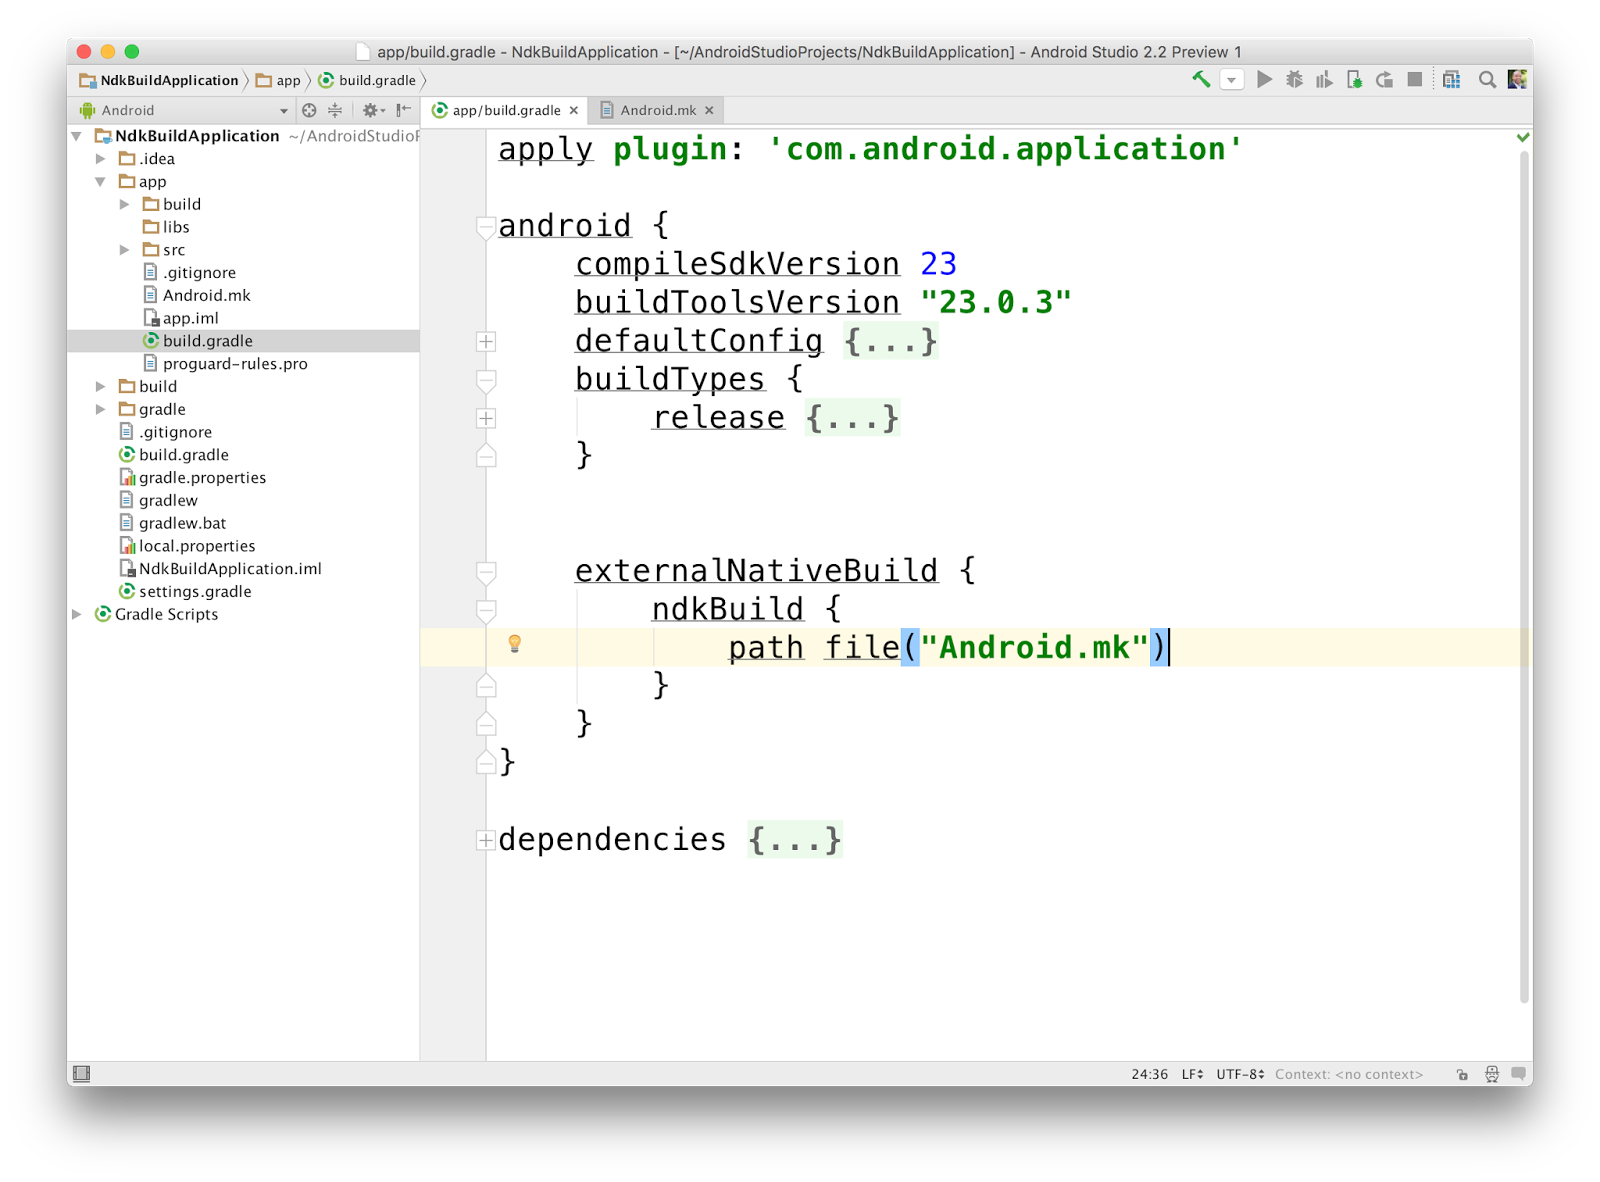 Android Developers Blog: Android Studio 2 2 Preview - New UI